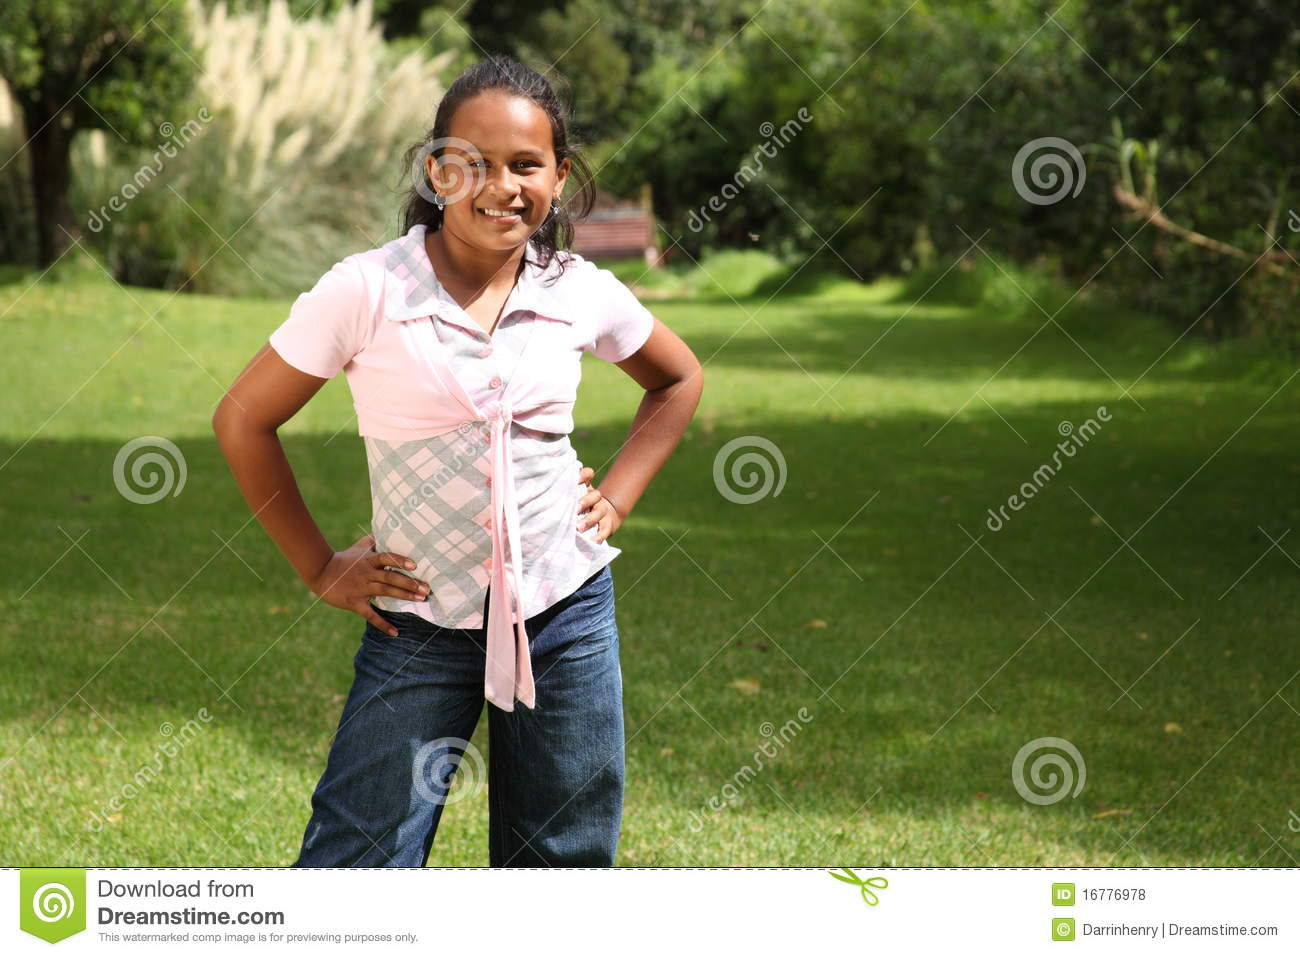 ... Free Stock Photos: Young school girl standing in park hands on hips